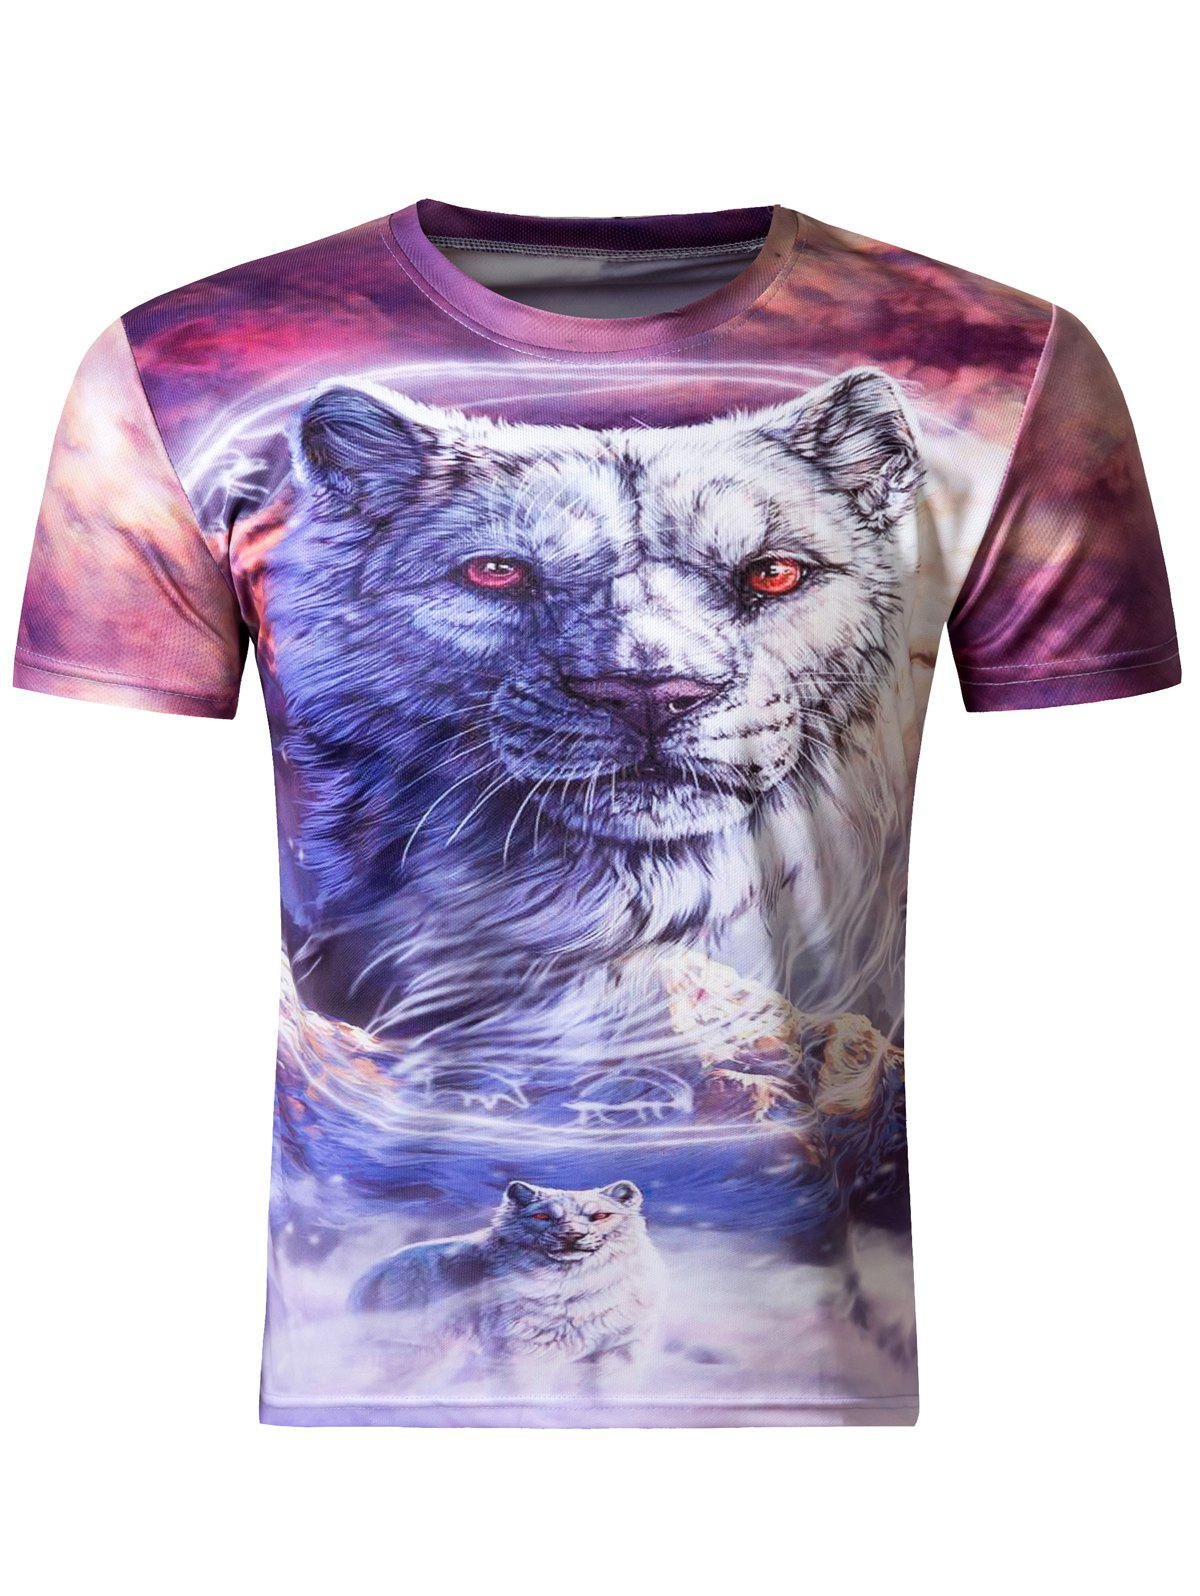 Stylish 3D Round Neck White Tiger Print Short Sleeve T-Shirt For Men dreamr new white cap sleeve burnout tiger face t shirt s $38 dbfl